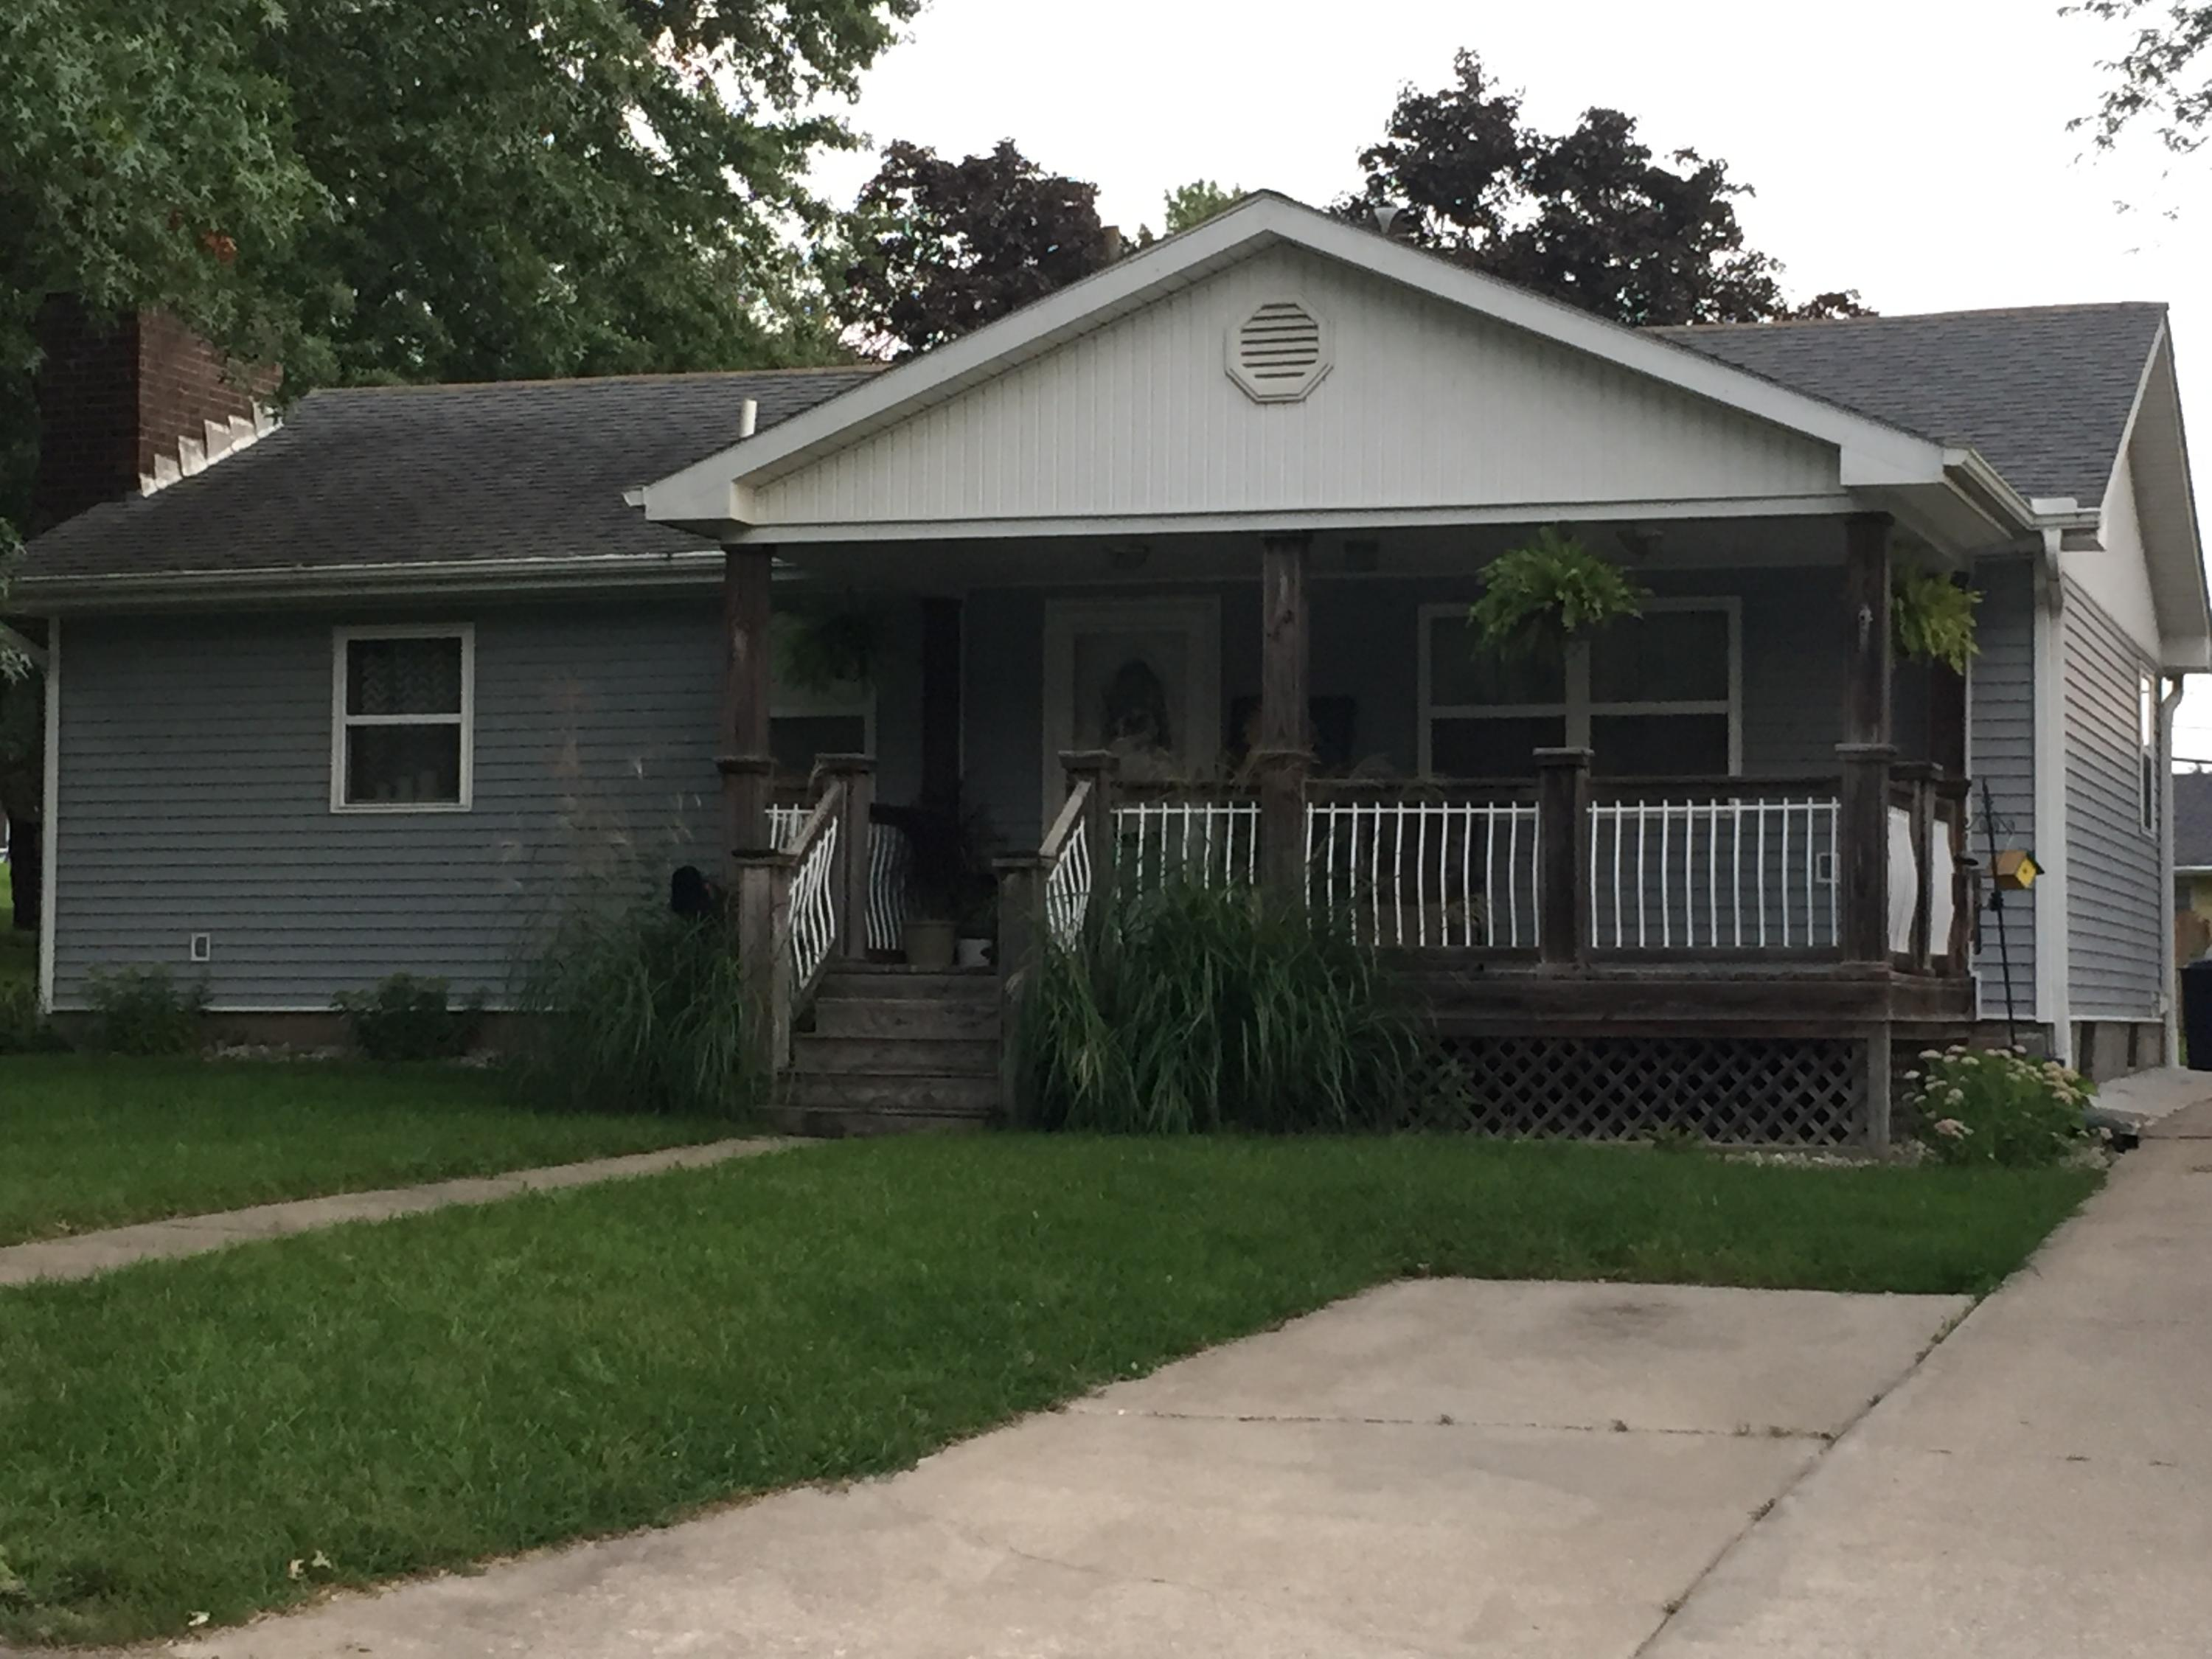 729 W THOMPSON ST, Maryville, Missouri 64468, 2 Bedrooms Bedrooms, ,1 BathroomBathrooms,Residential,THOMPSON,4564